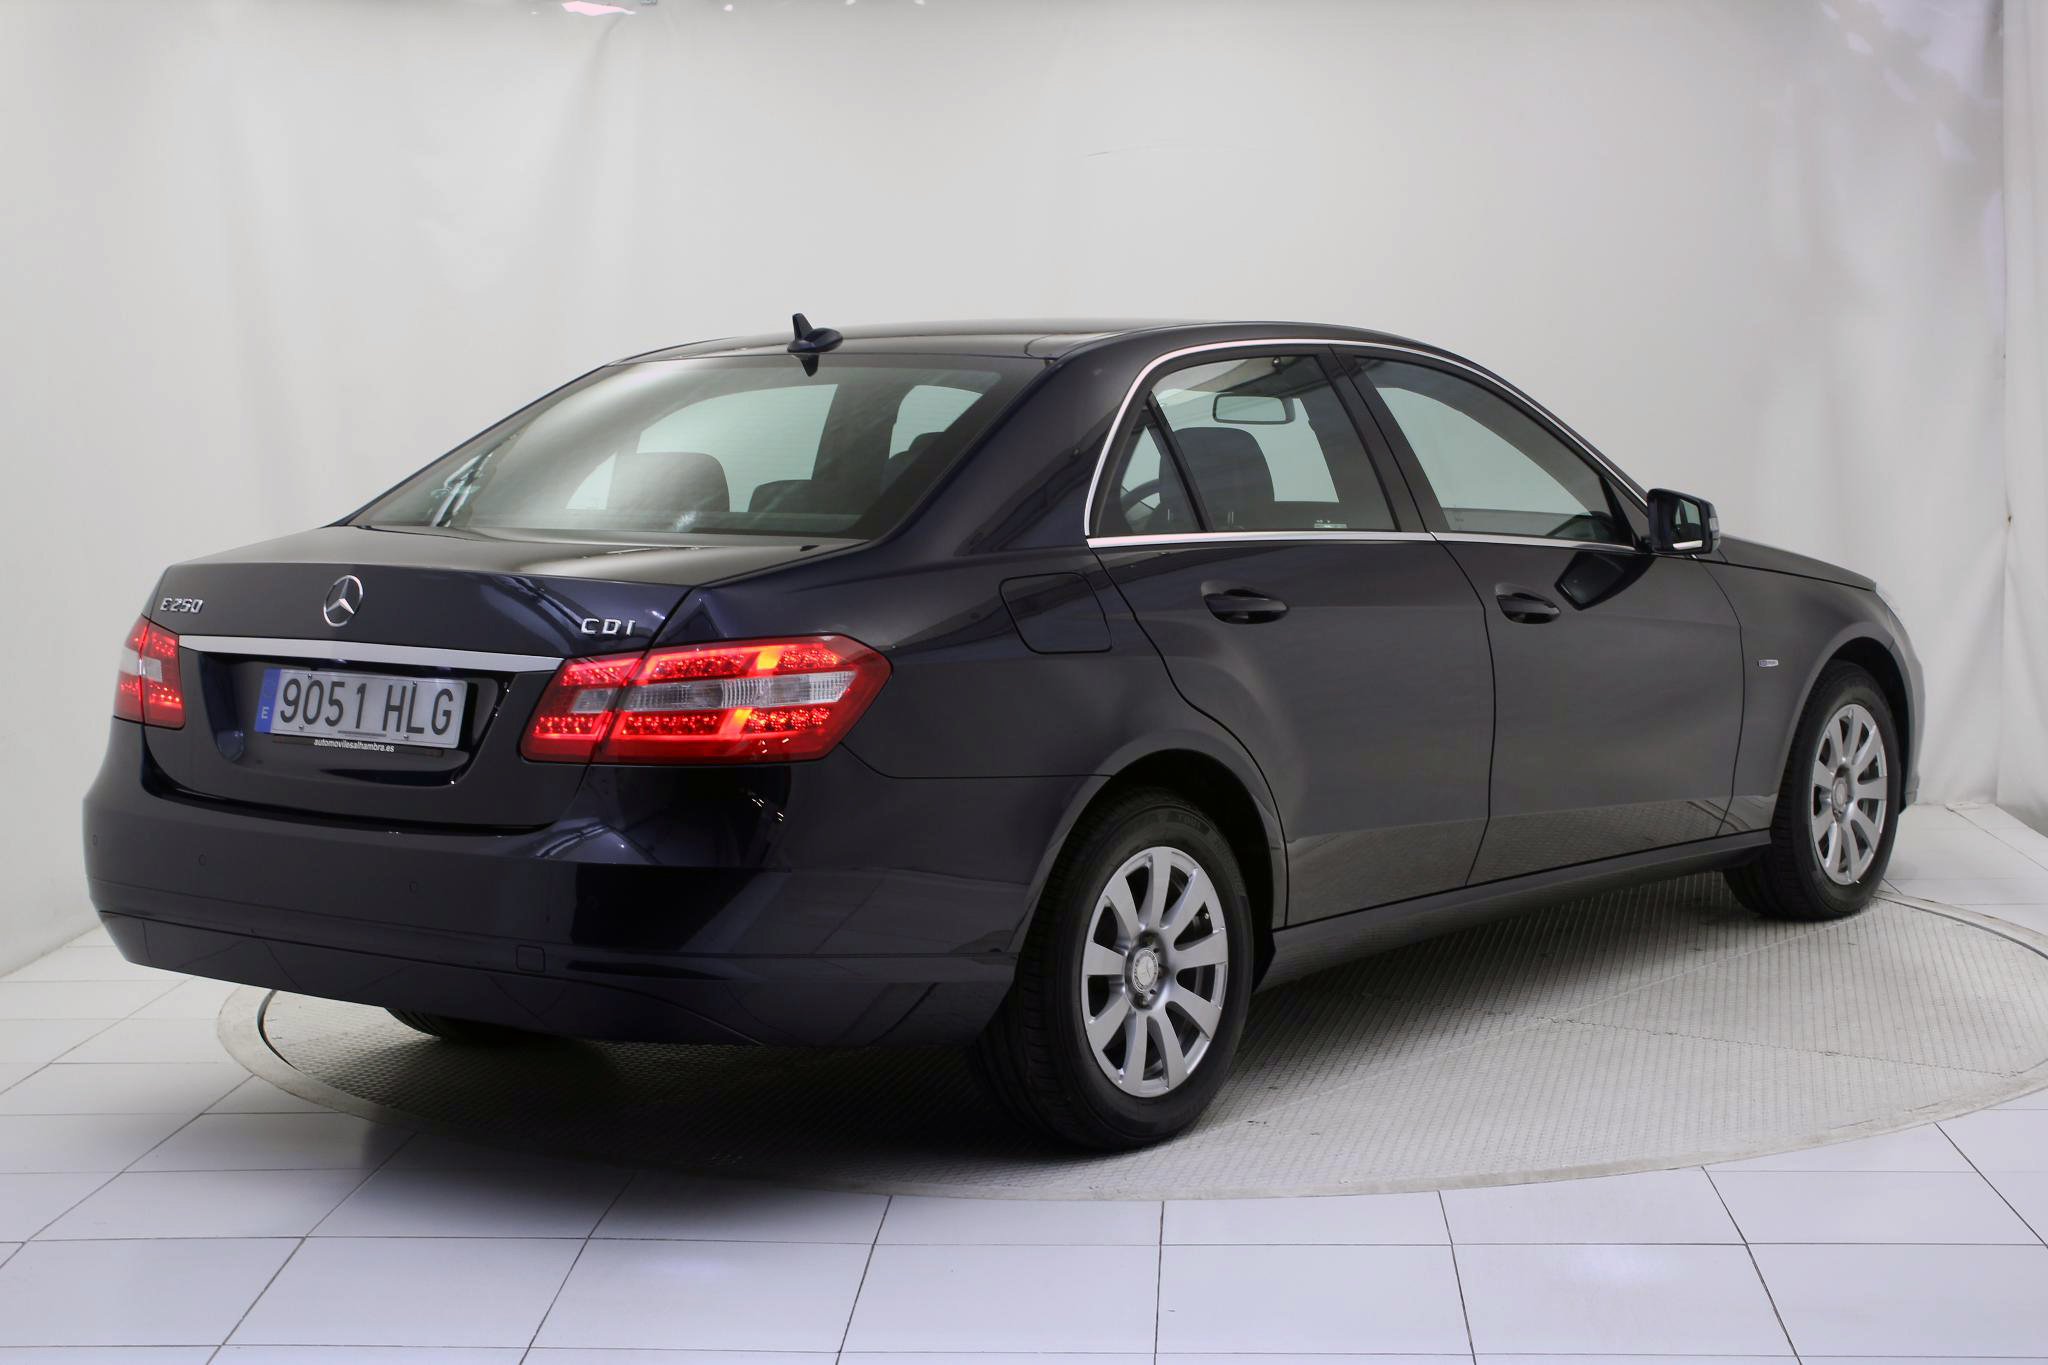 Mercedes-Benz Clase E CLASE E 250 CDI BLUE EFFICIENCY AUTO imagen 5